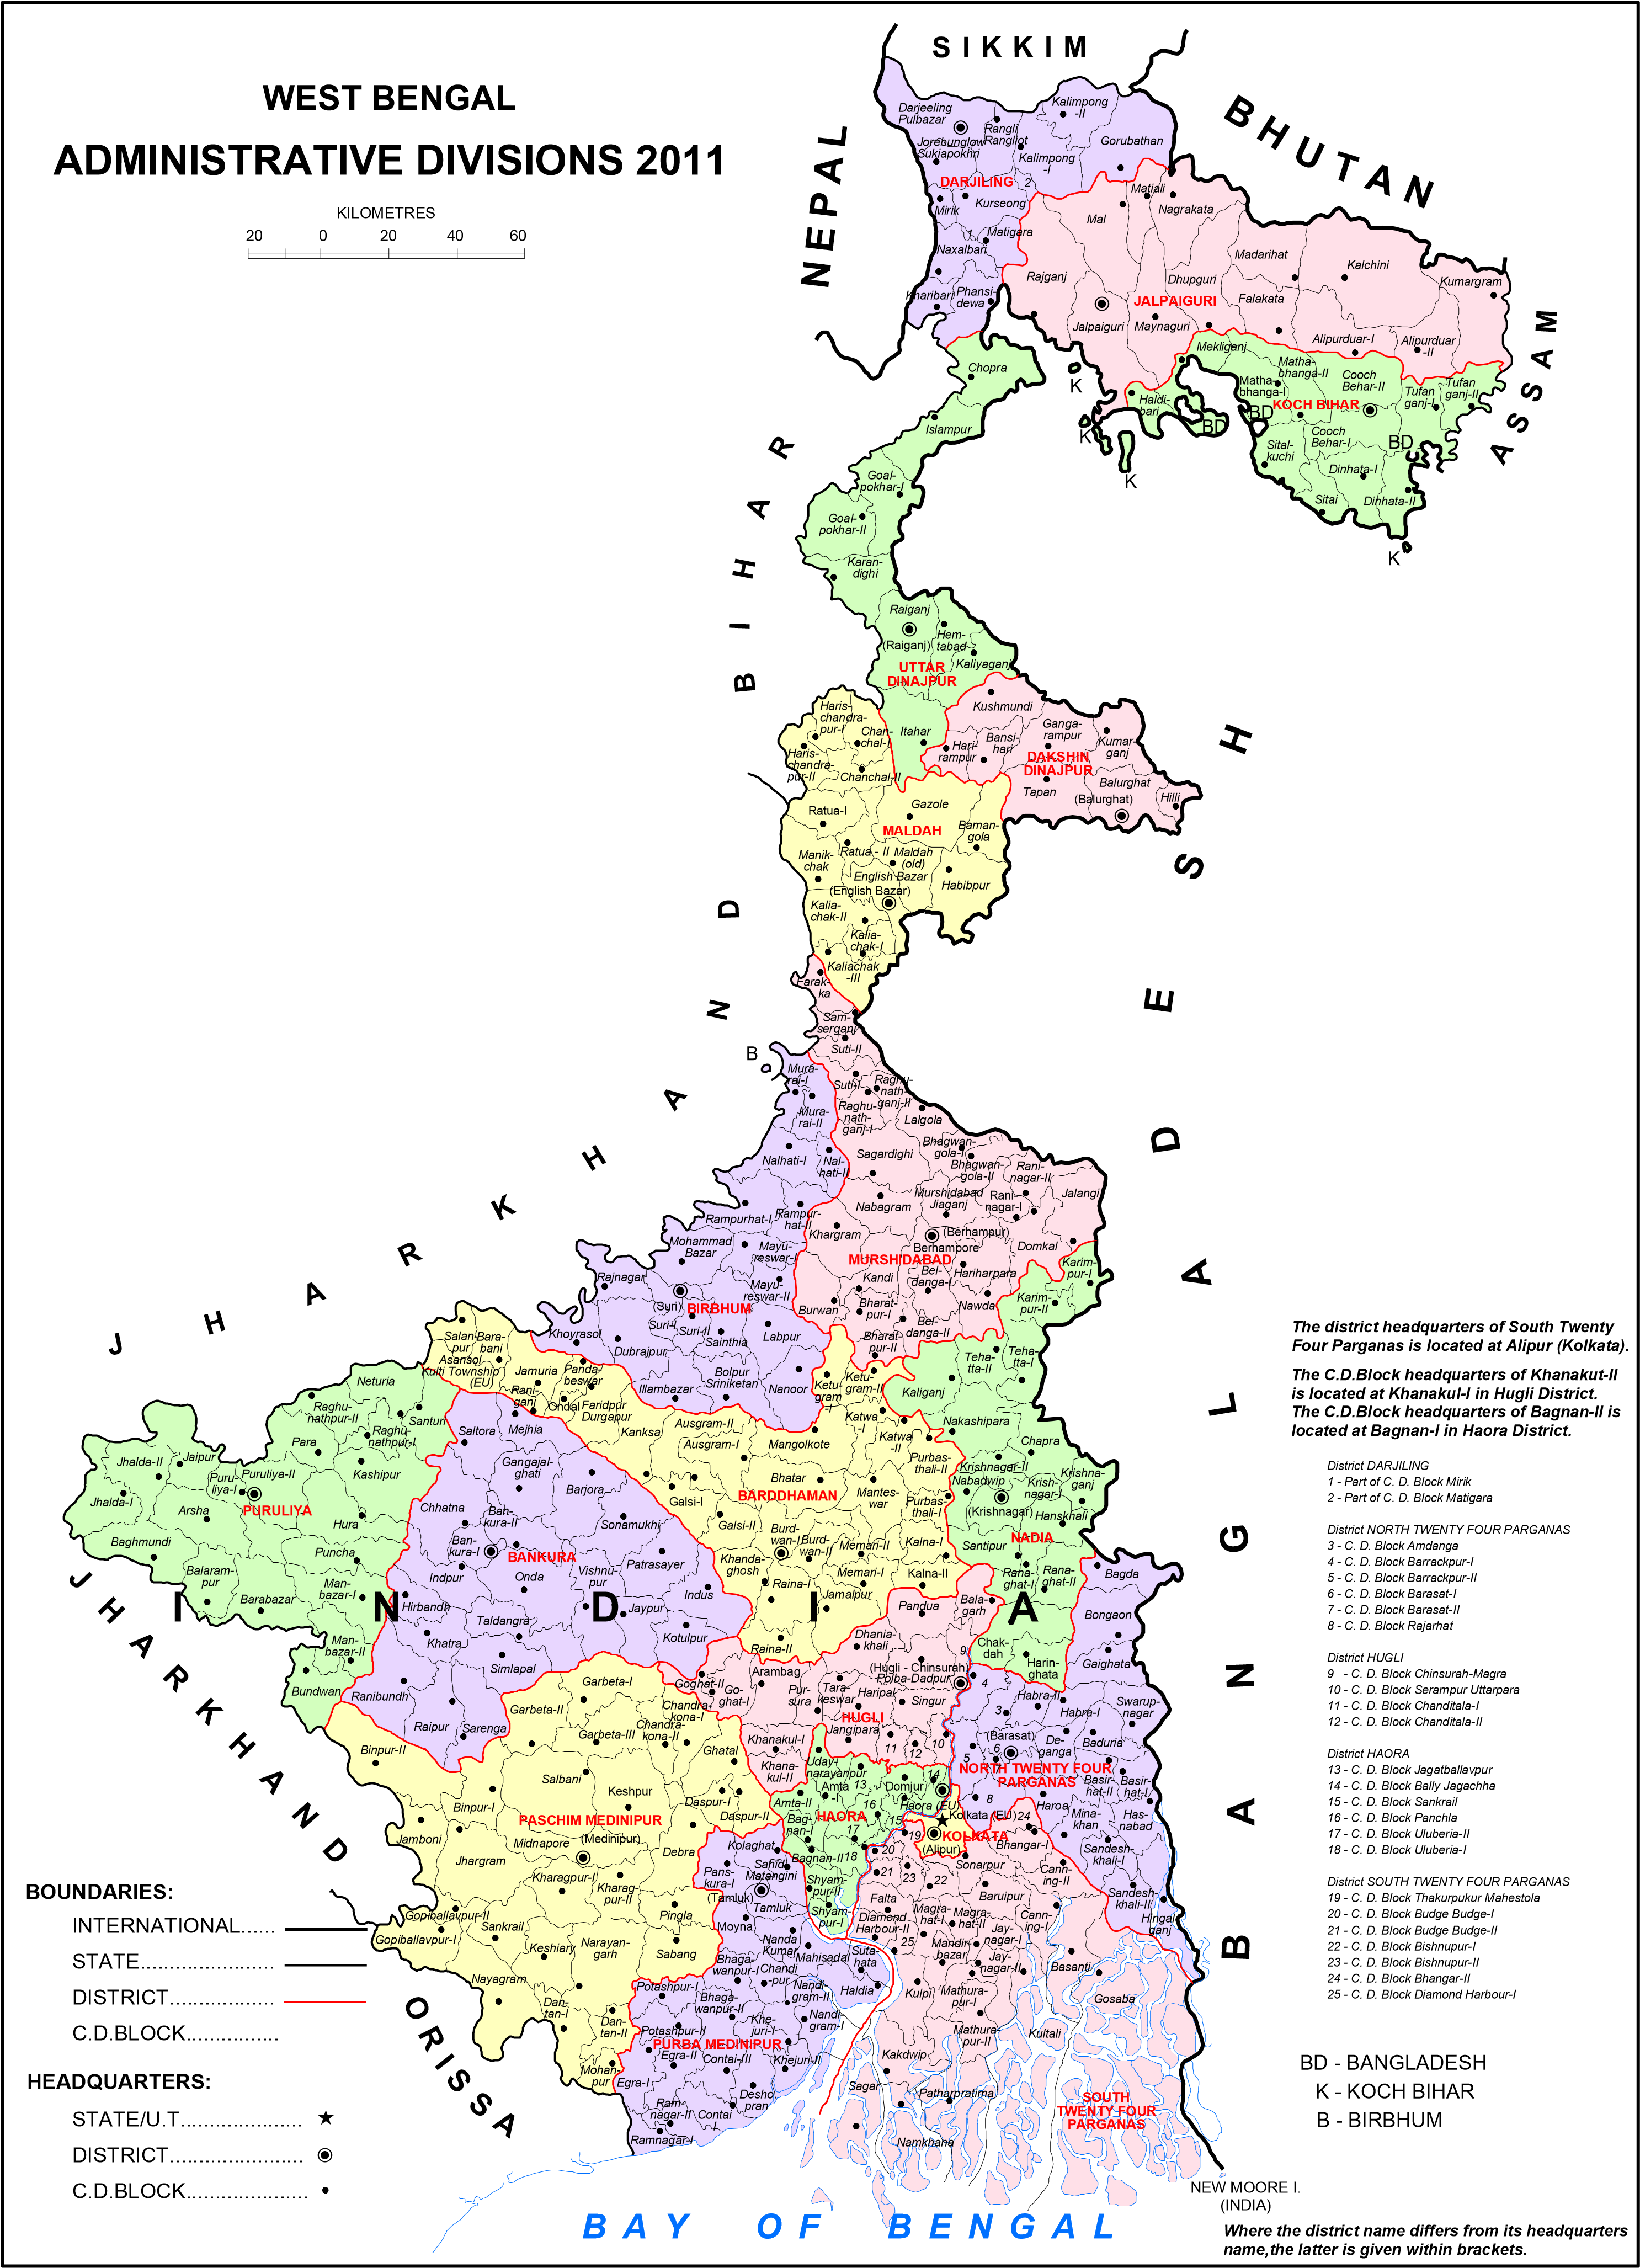 maps of sc with High Resolution Map West Bengal Hd on C us3 likewise Mapa De Rutas De Aguascalientes M352 further Grand Canyon Skywalk On Map besides J5HU2SC56sq further Interaktive Kartenwerke Brandenburg Berlin Sachsen Anhalt 3D Topographische Karte 978 3 940591 77 7 mm 041 3c  m.